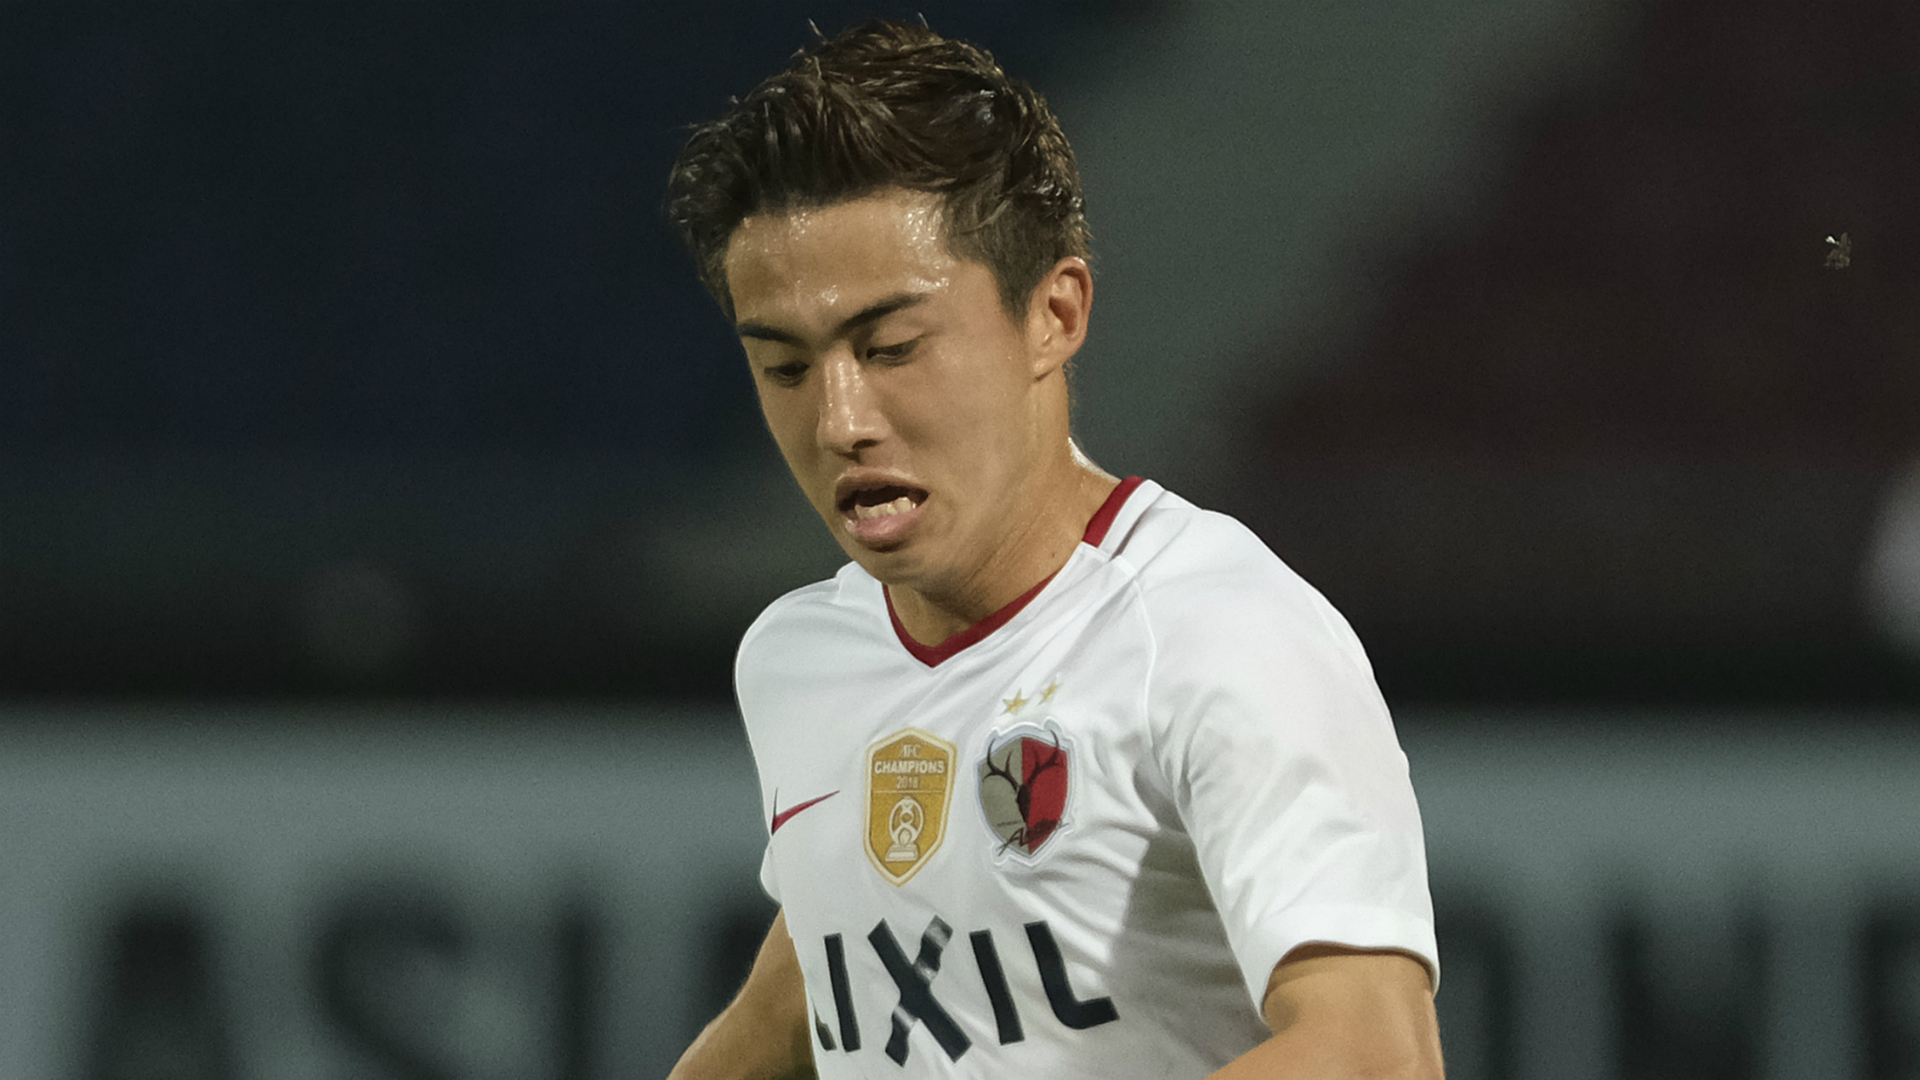 Hiroki Abe is to join Barcelona from Kashima Antlers and is expected to spend next season with the B team in Catalonia.